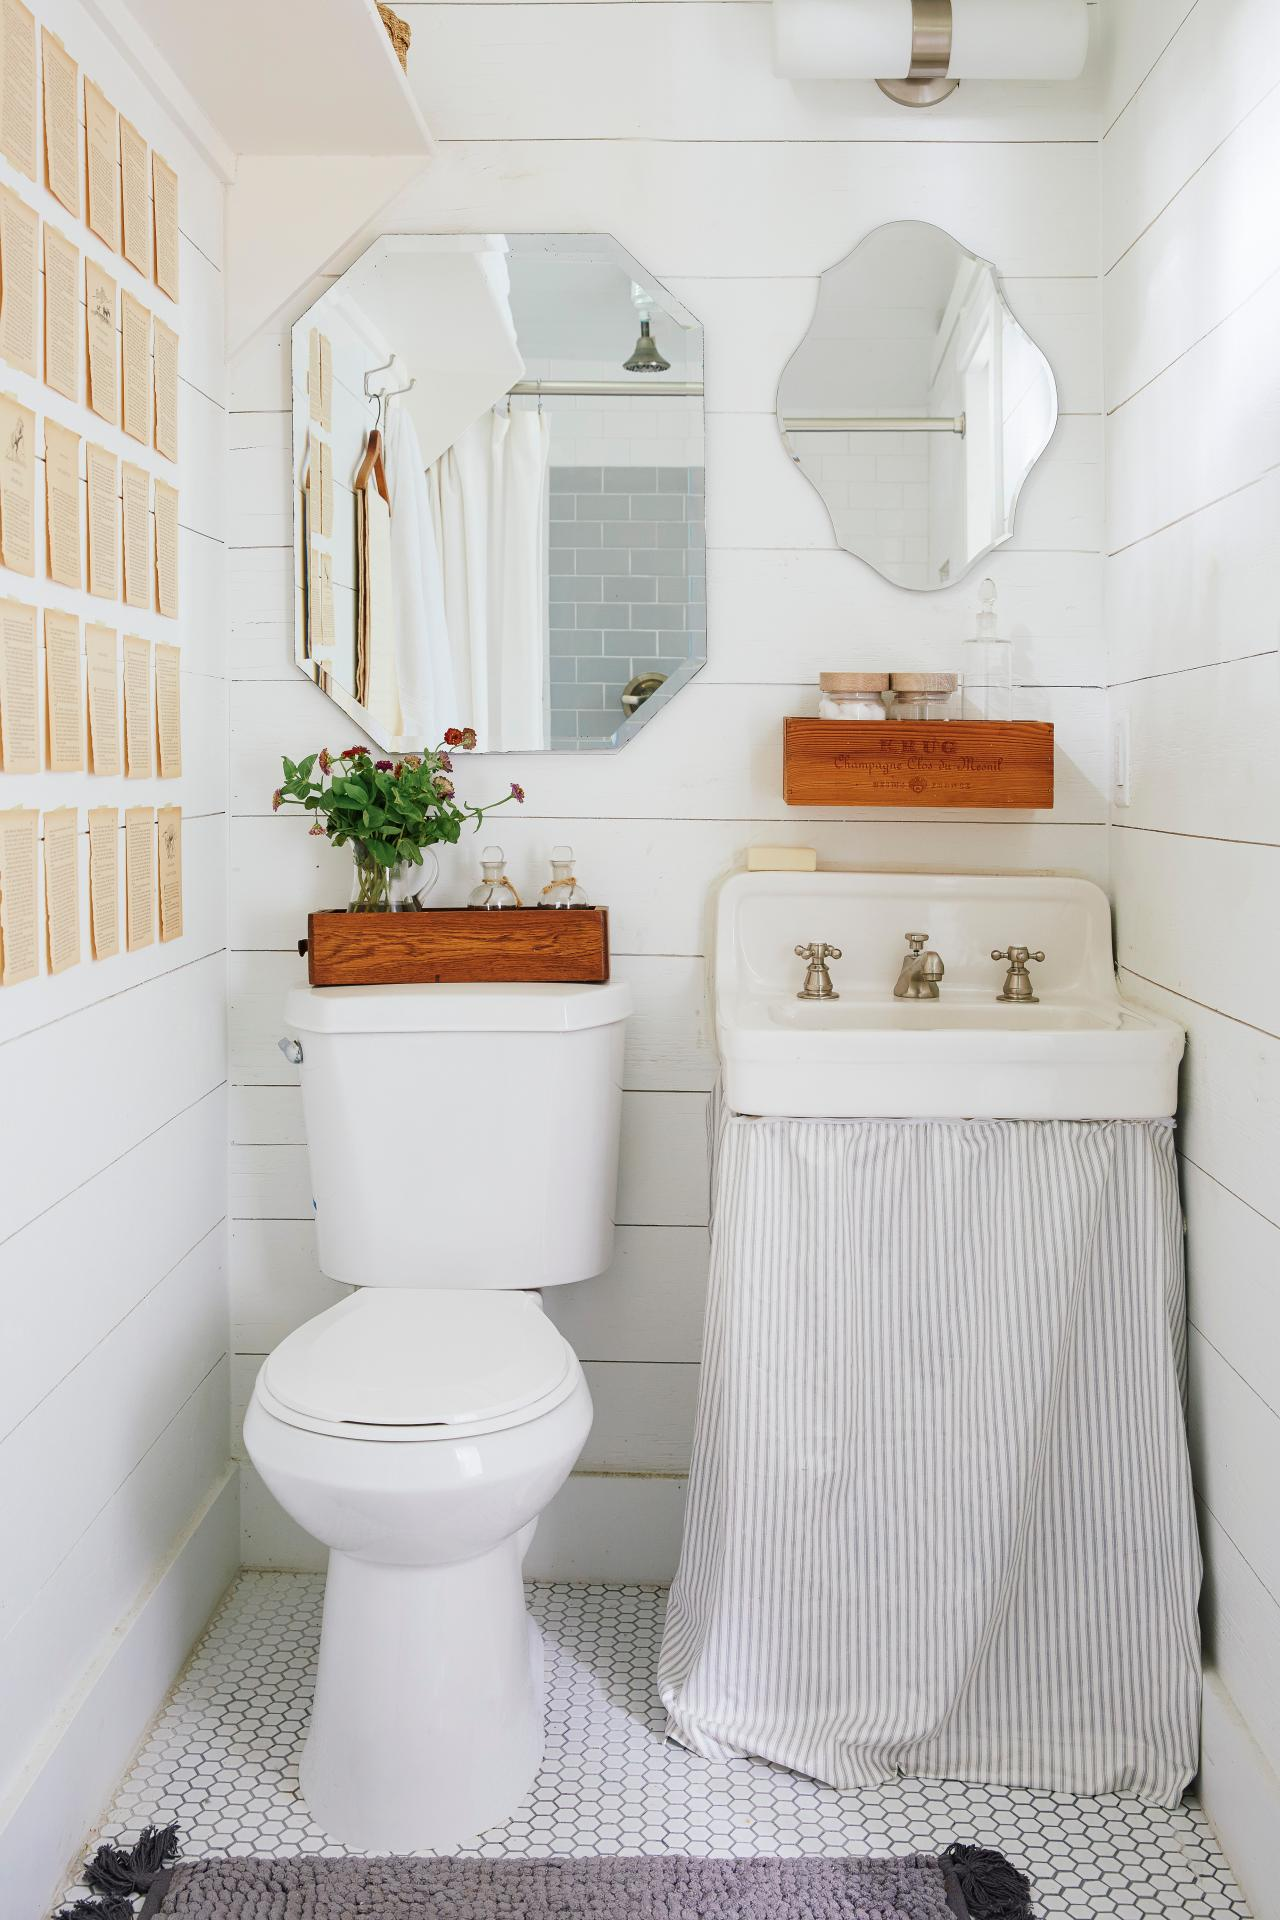 A small white bathroom with pages from a book stuck on the wall